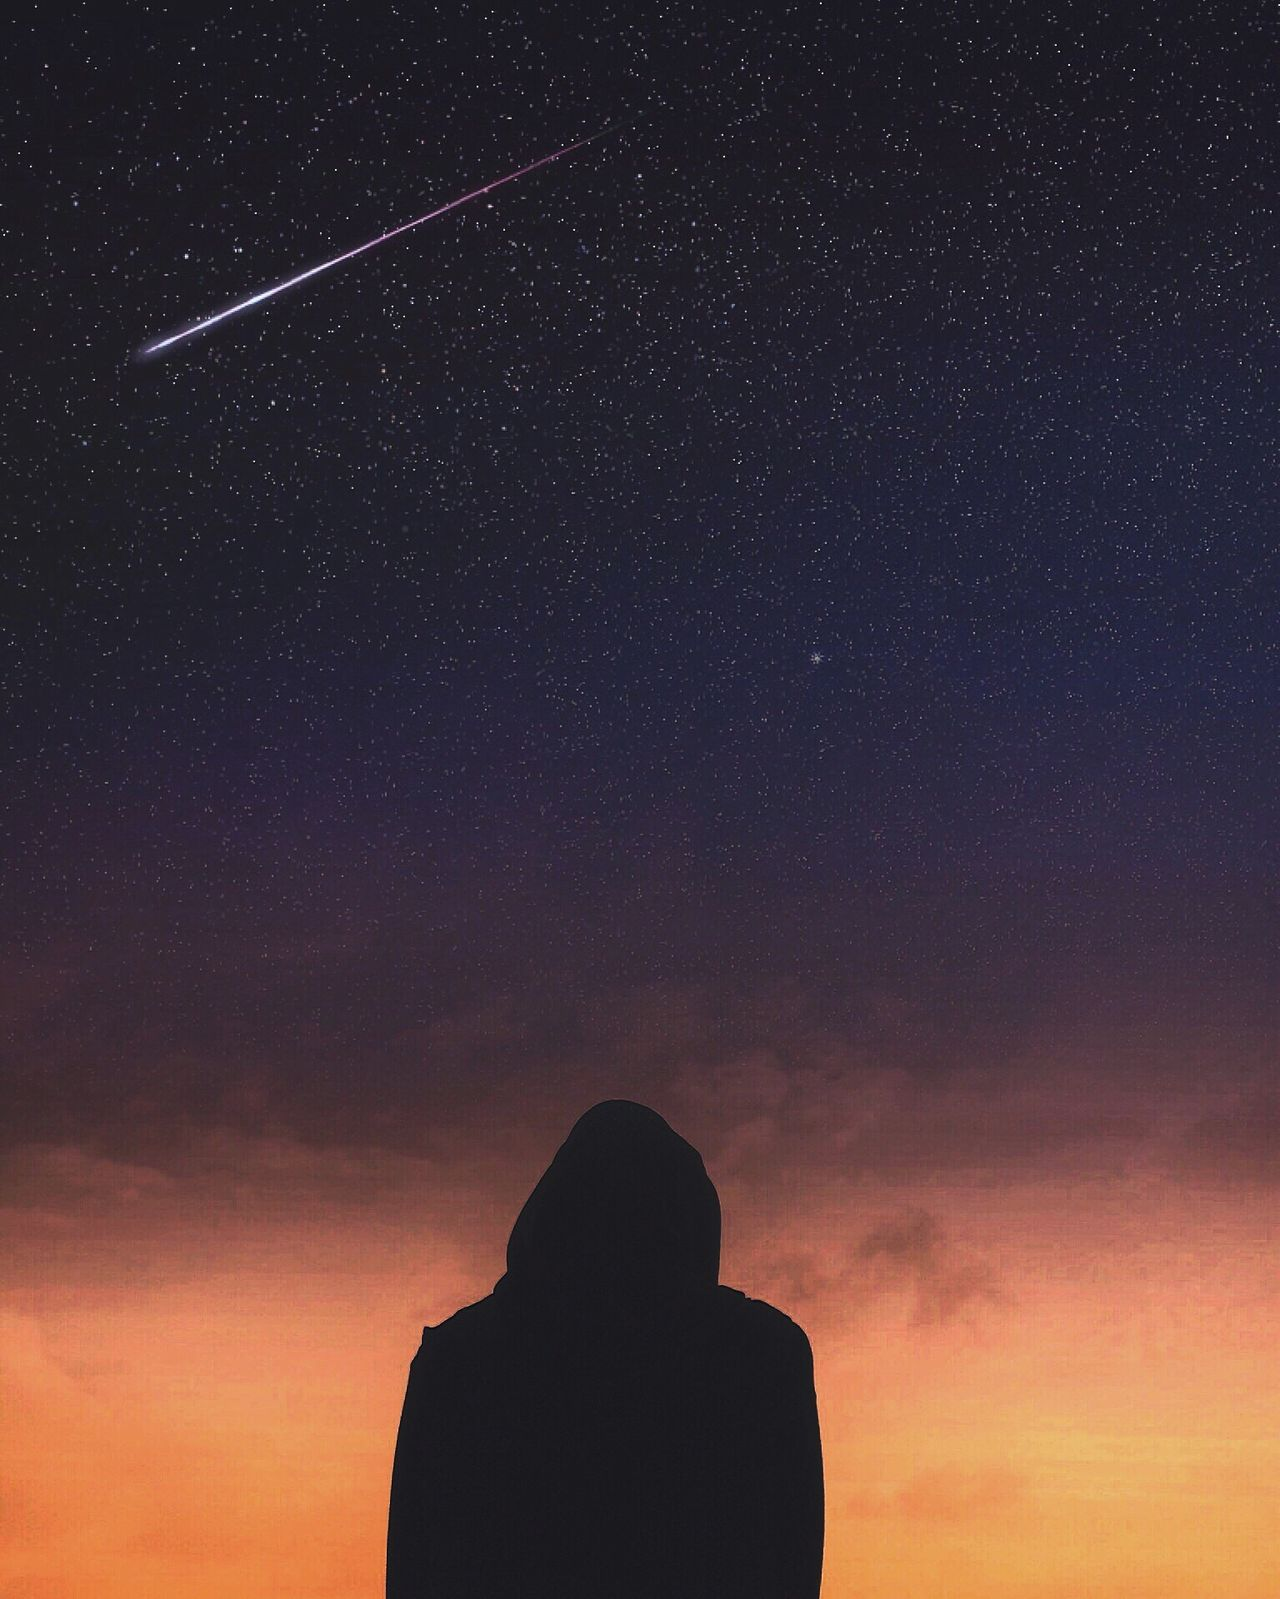 Beautiful stock photos of galaxy, silhouette, sky, star - space, nature